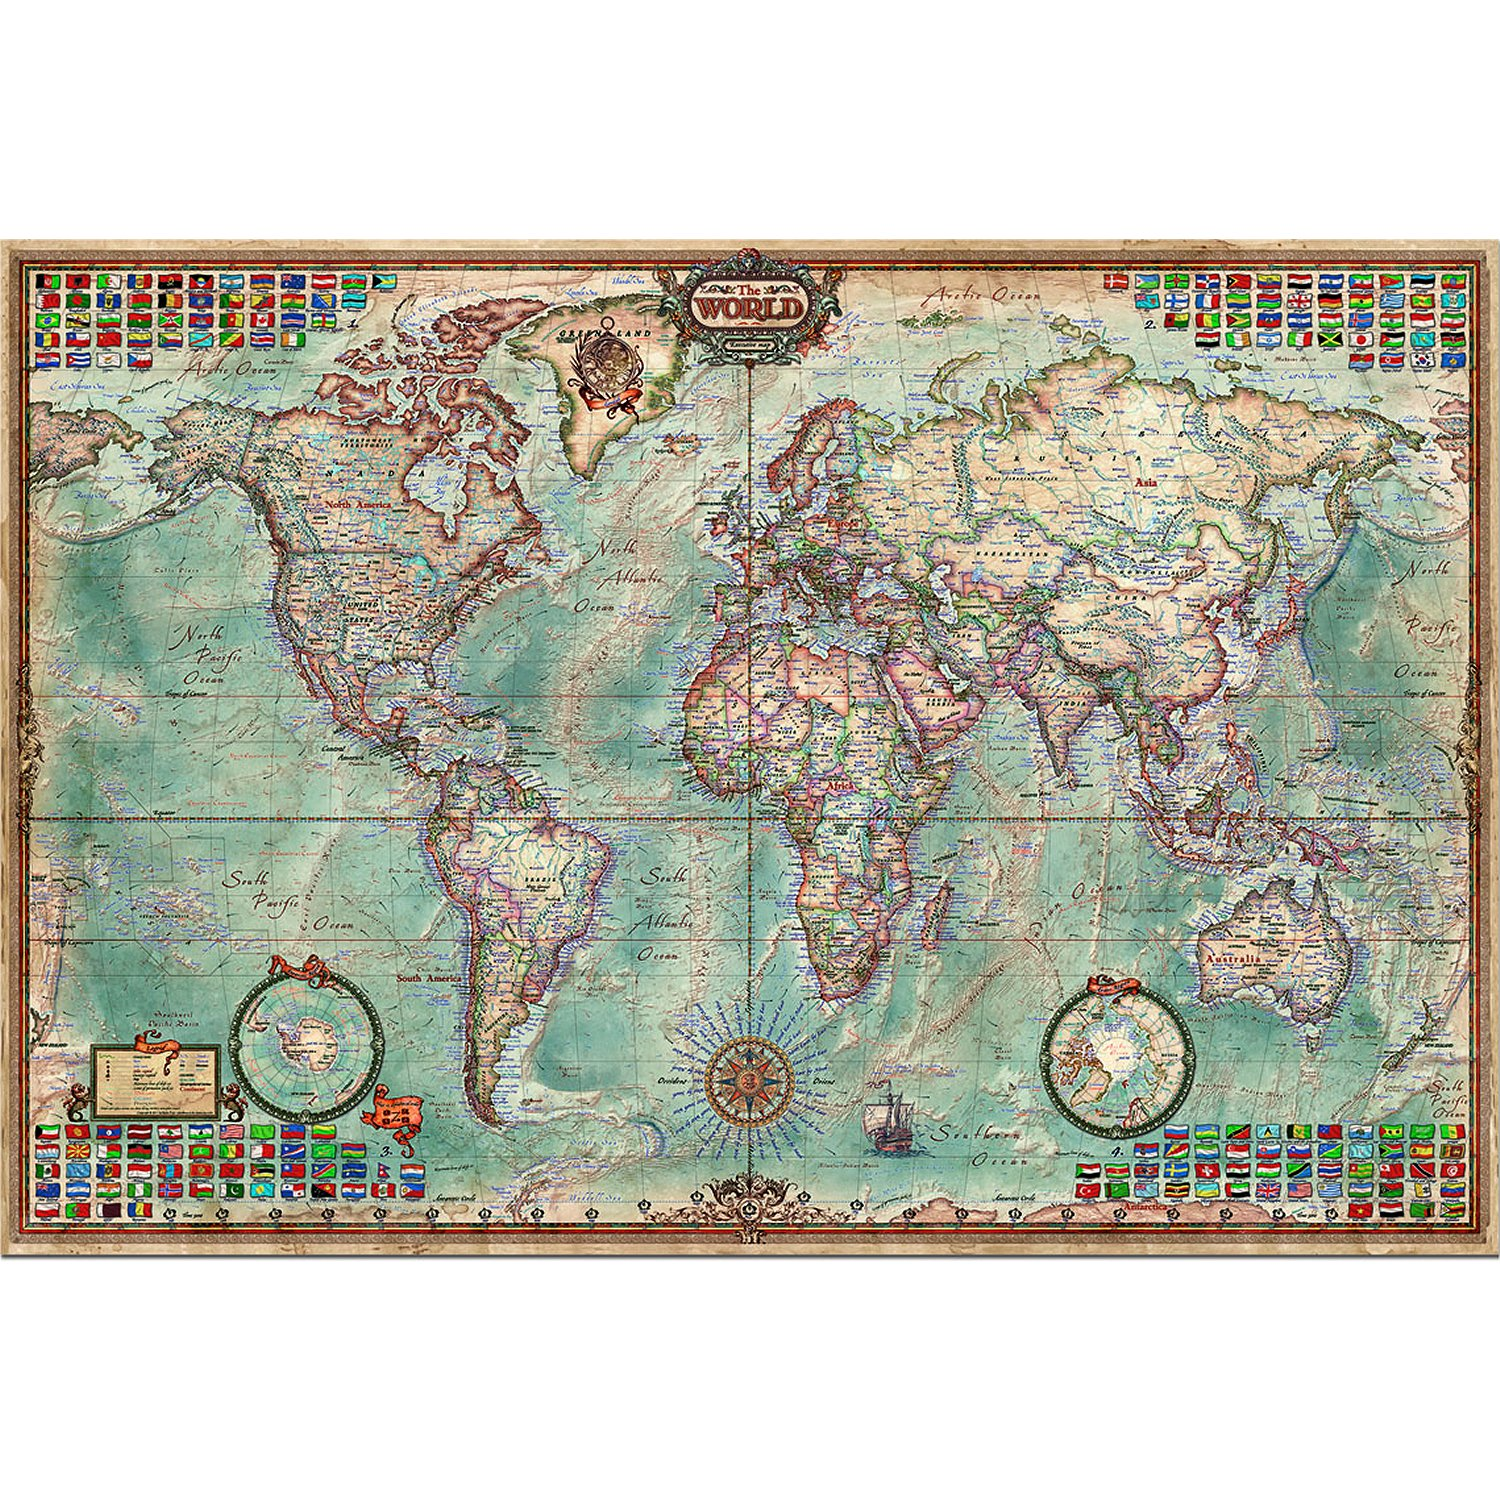 Jigsaw puzzle 4000 pieces world map educa 14827 4000 pieces jigsaw puzzle 4000 pieces world map gumiabroncs Image collections